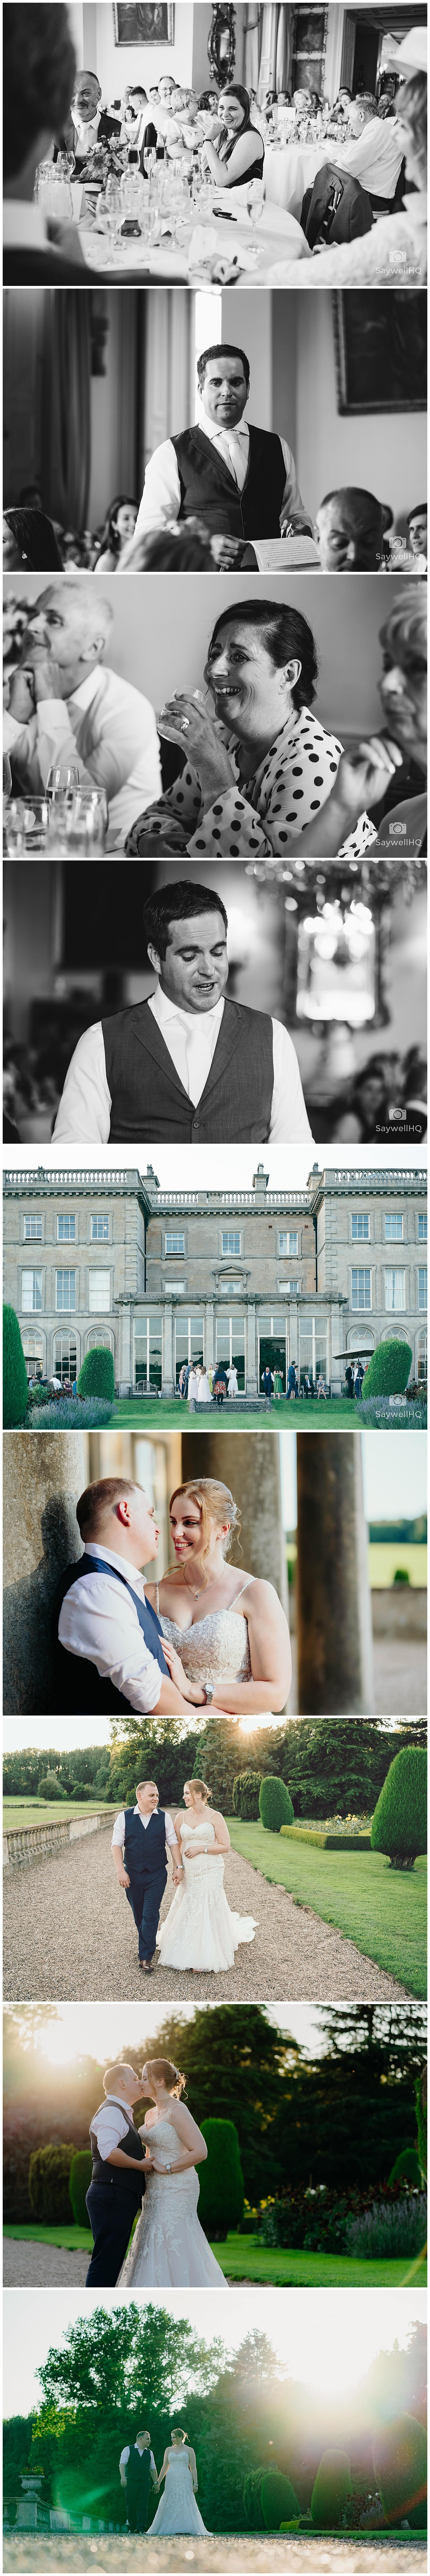 Wedding Photography at Prestwold Hall – evening games at their prestwold hall wedding